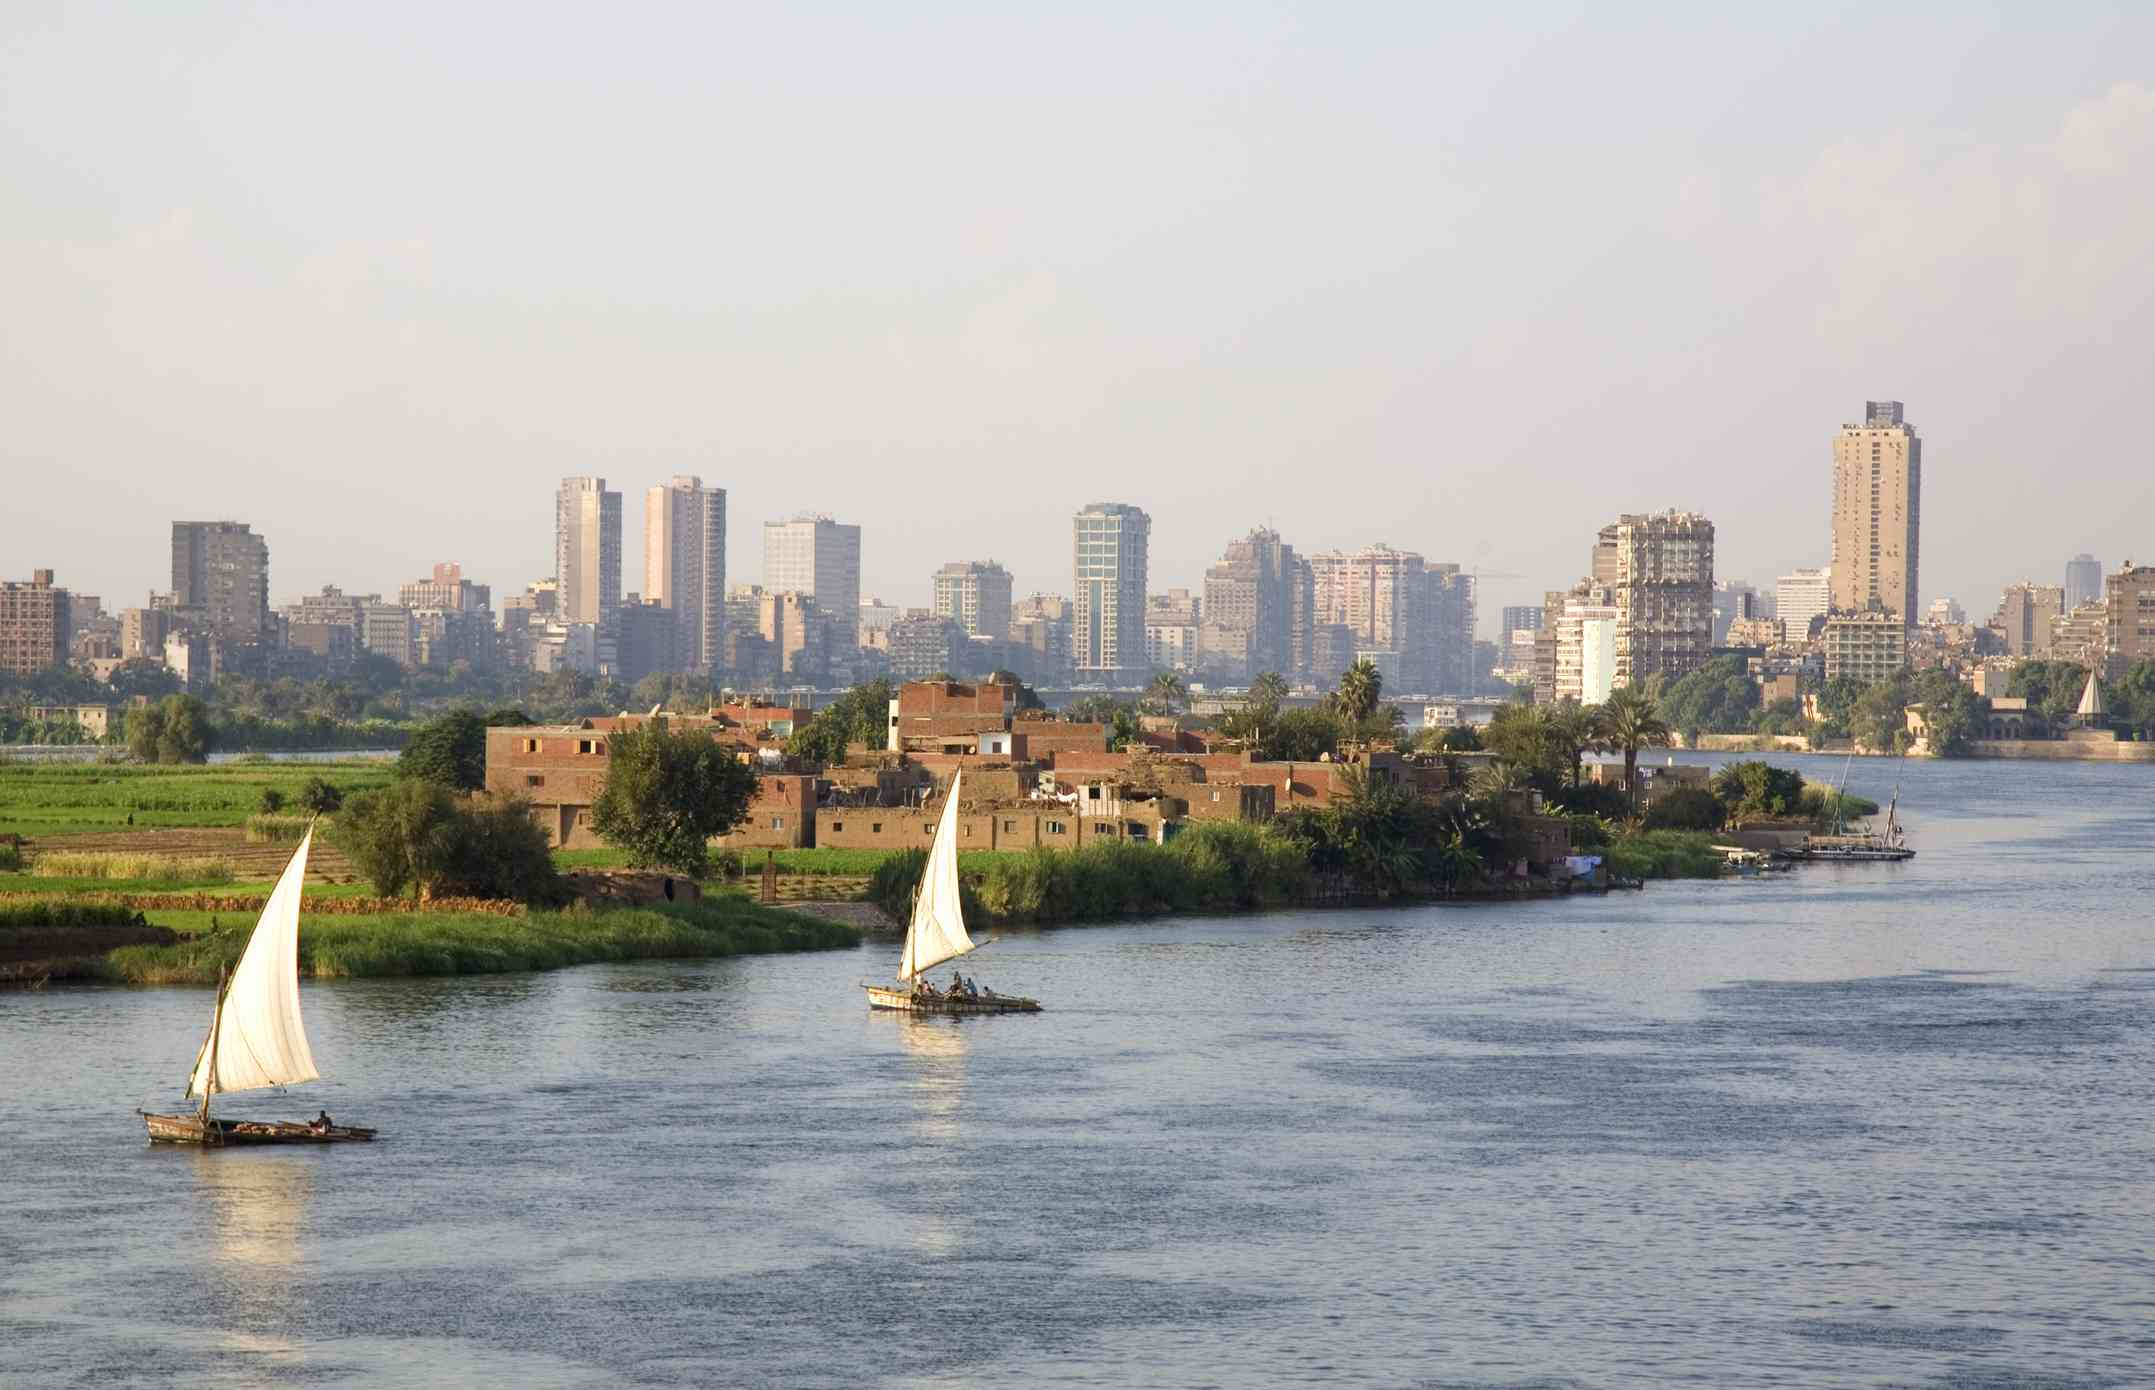 Felucca boats on the Nile River in Cairo, Egypt